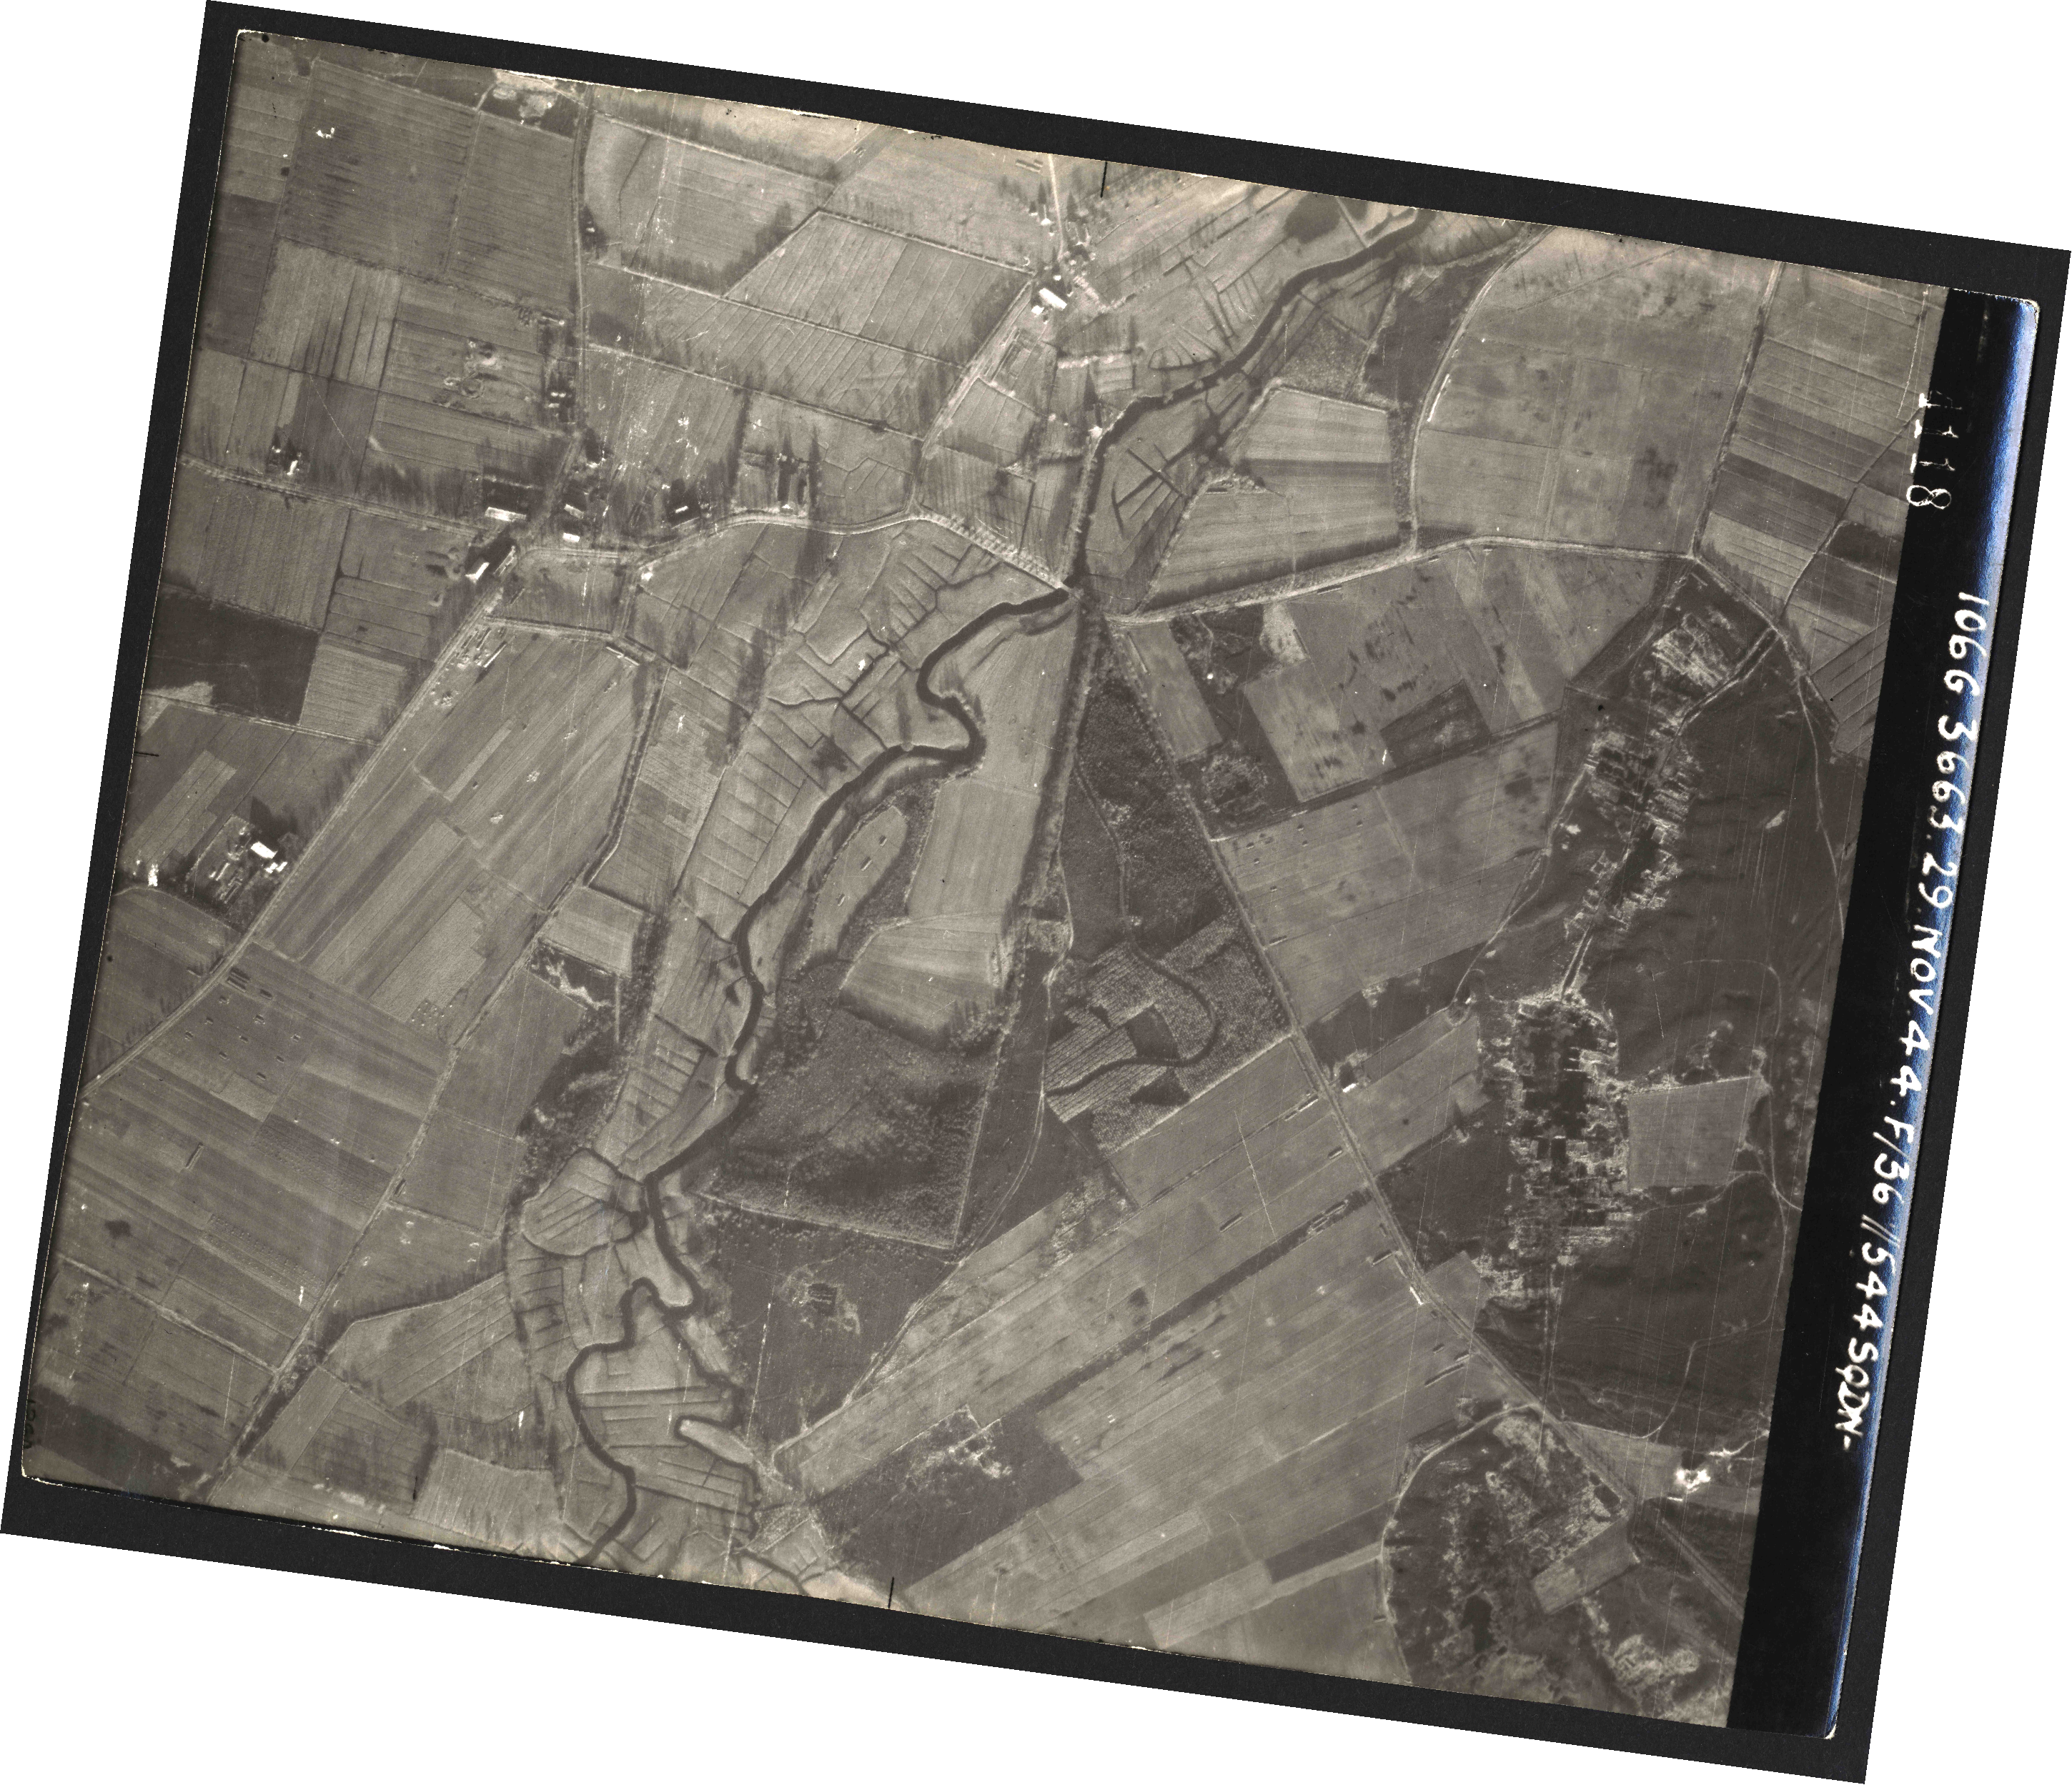 Collection RAF aerial photos 1940-1945 - flight 025, run 02, photo 4118